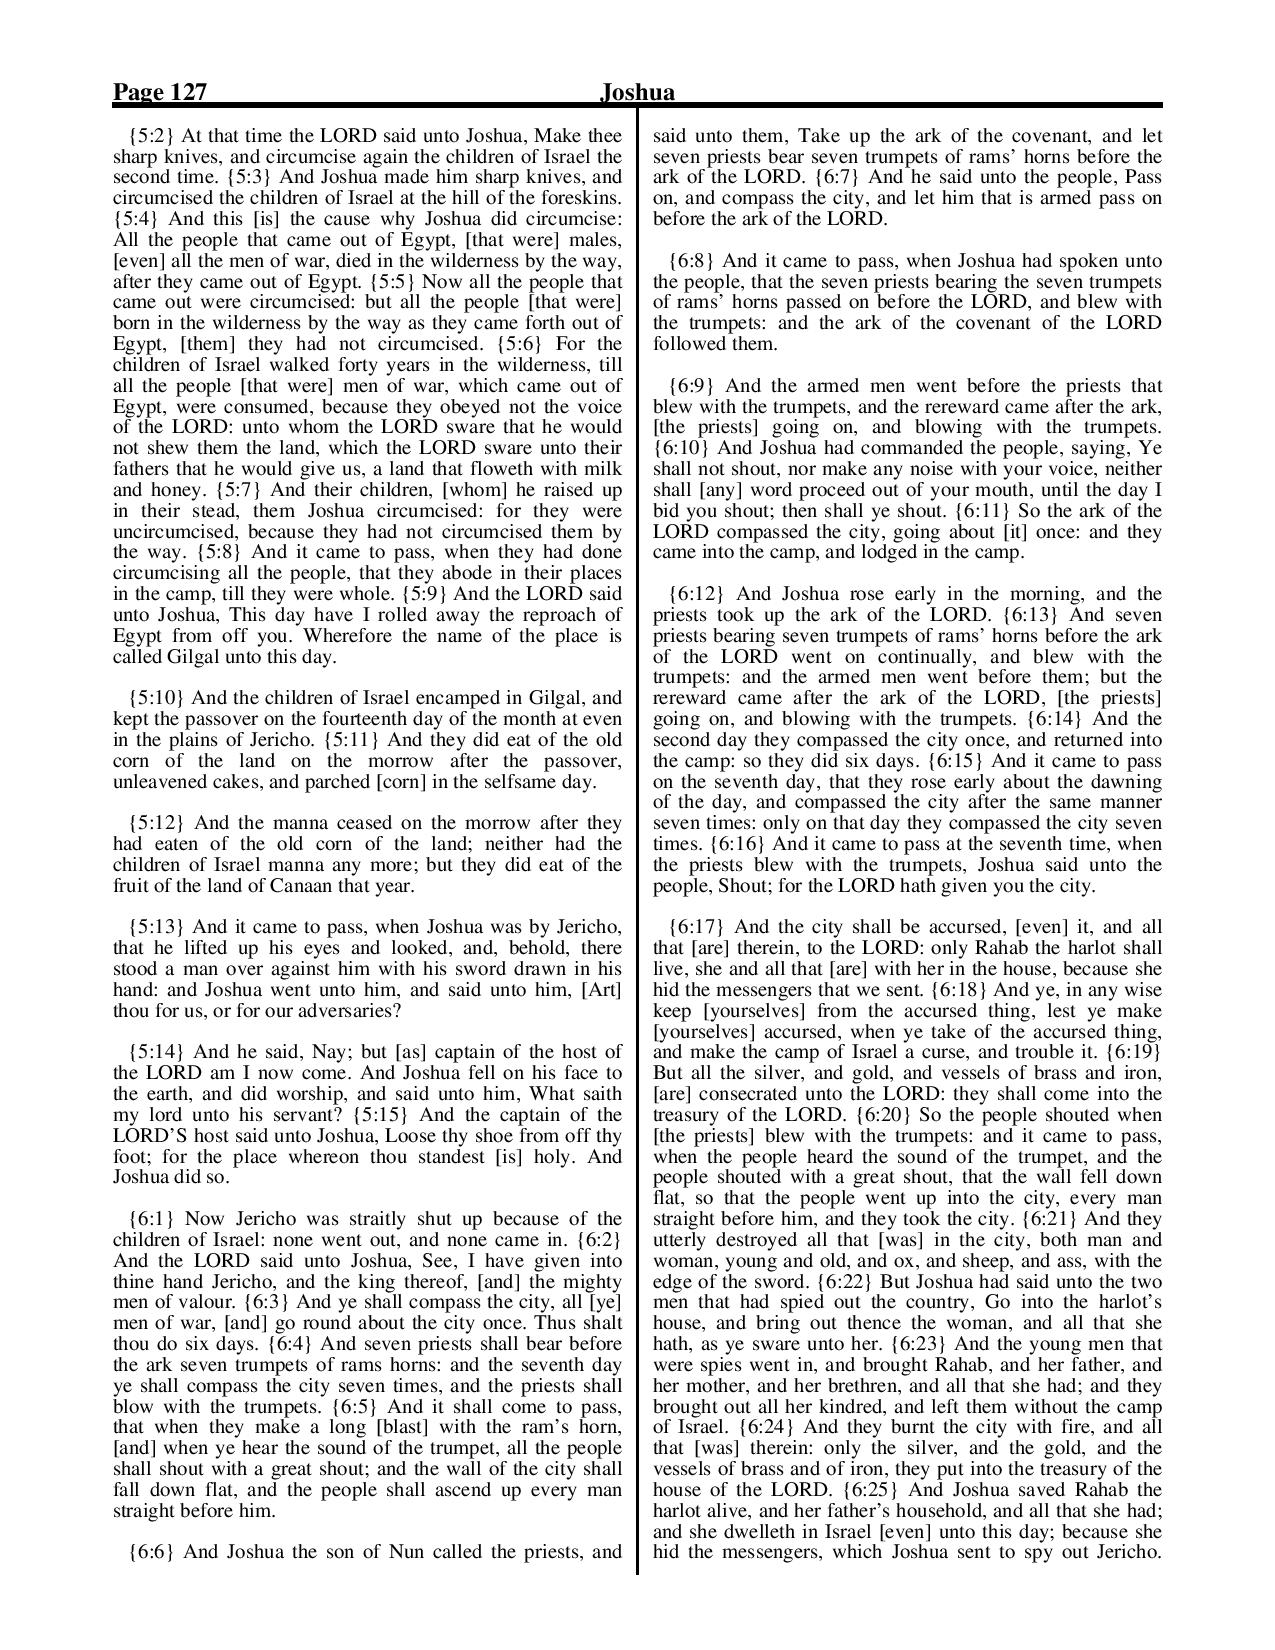 King-James-Bible-KJV-Bible-PDF-page-148